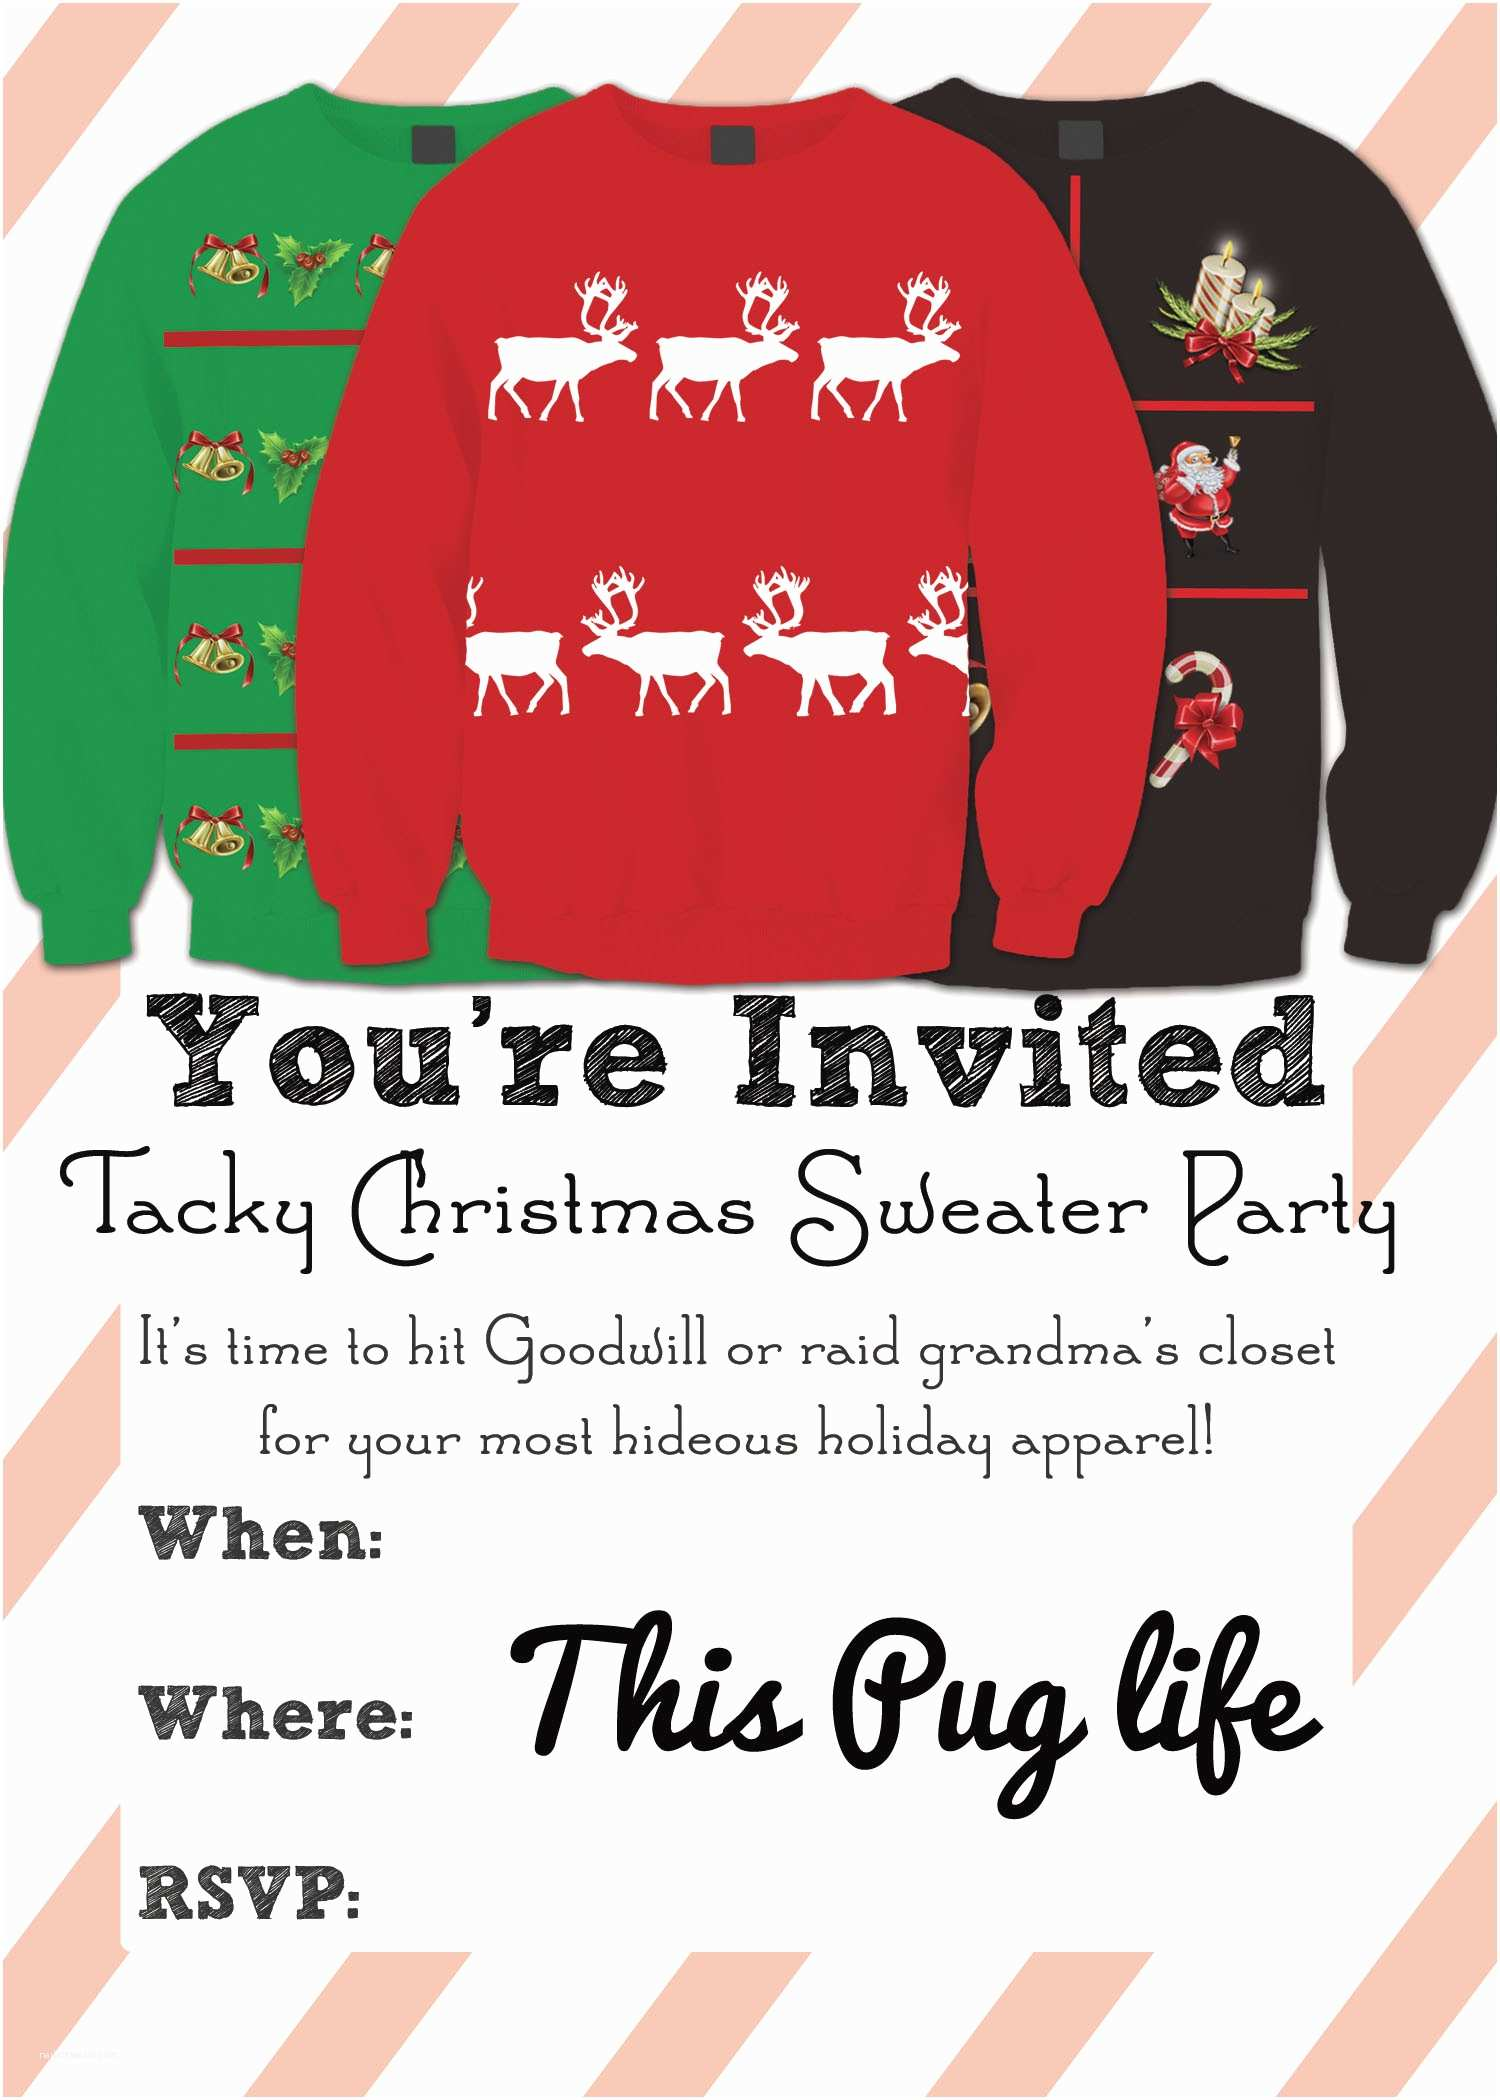 Ugly Sweater Party Invitations Tacky Christmas Sweater Party Invitations – Free Printable